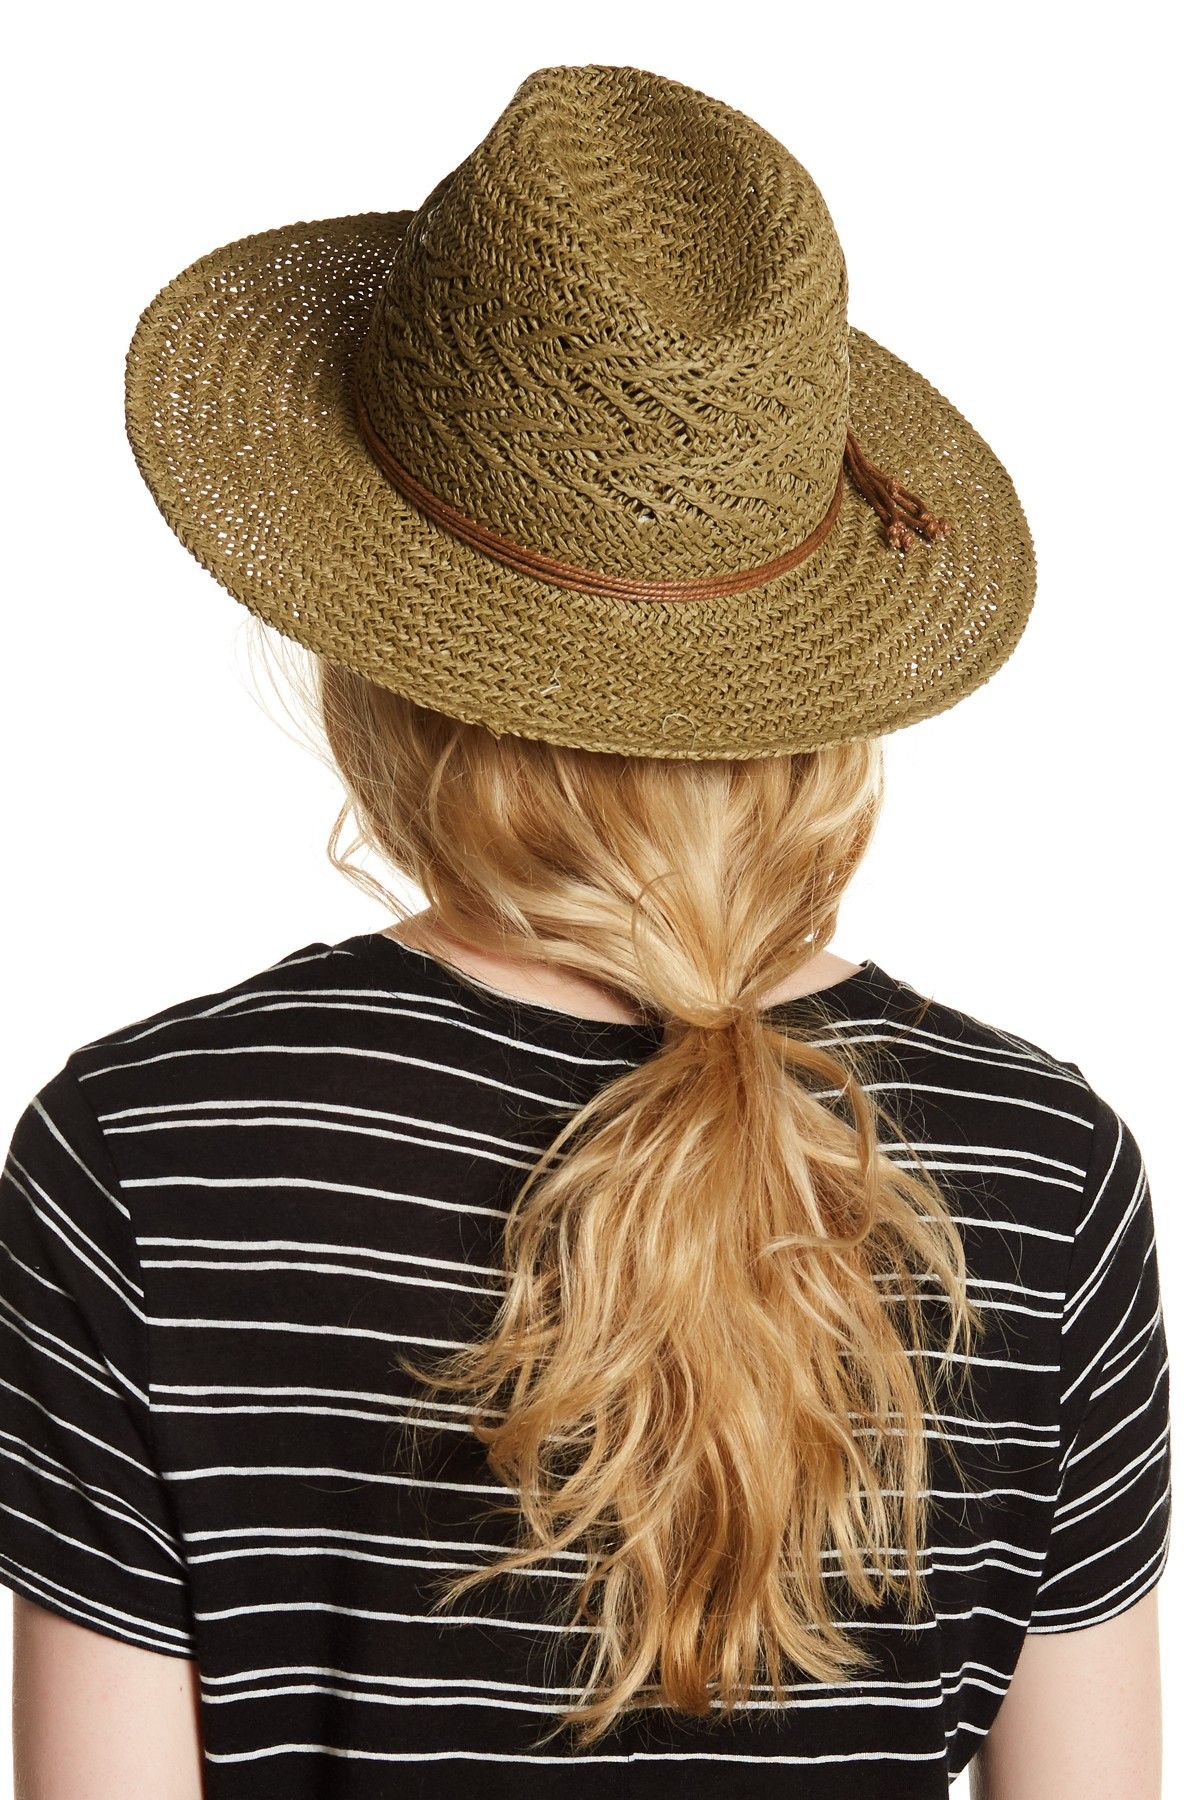 August Hat - Rustic Wave Fedora is now 48% off. Free Shipping on orders over $100.